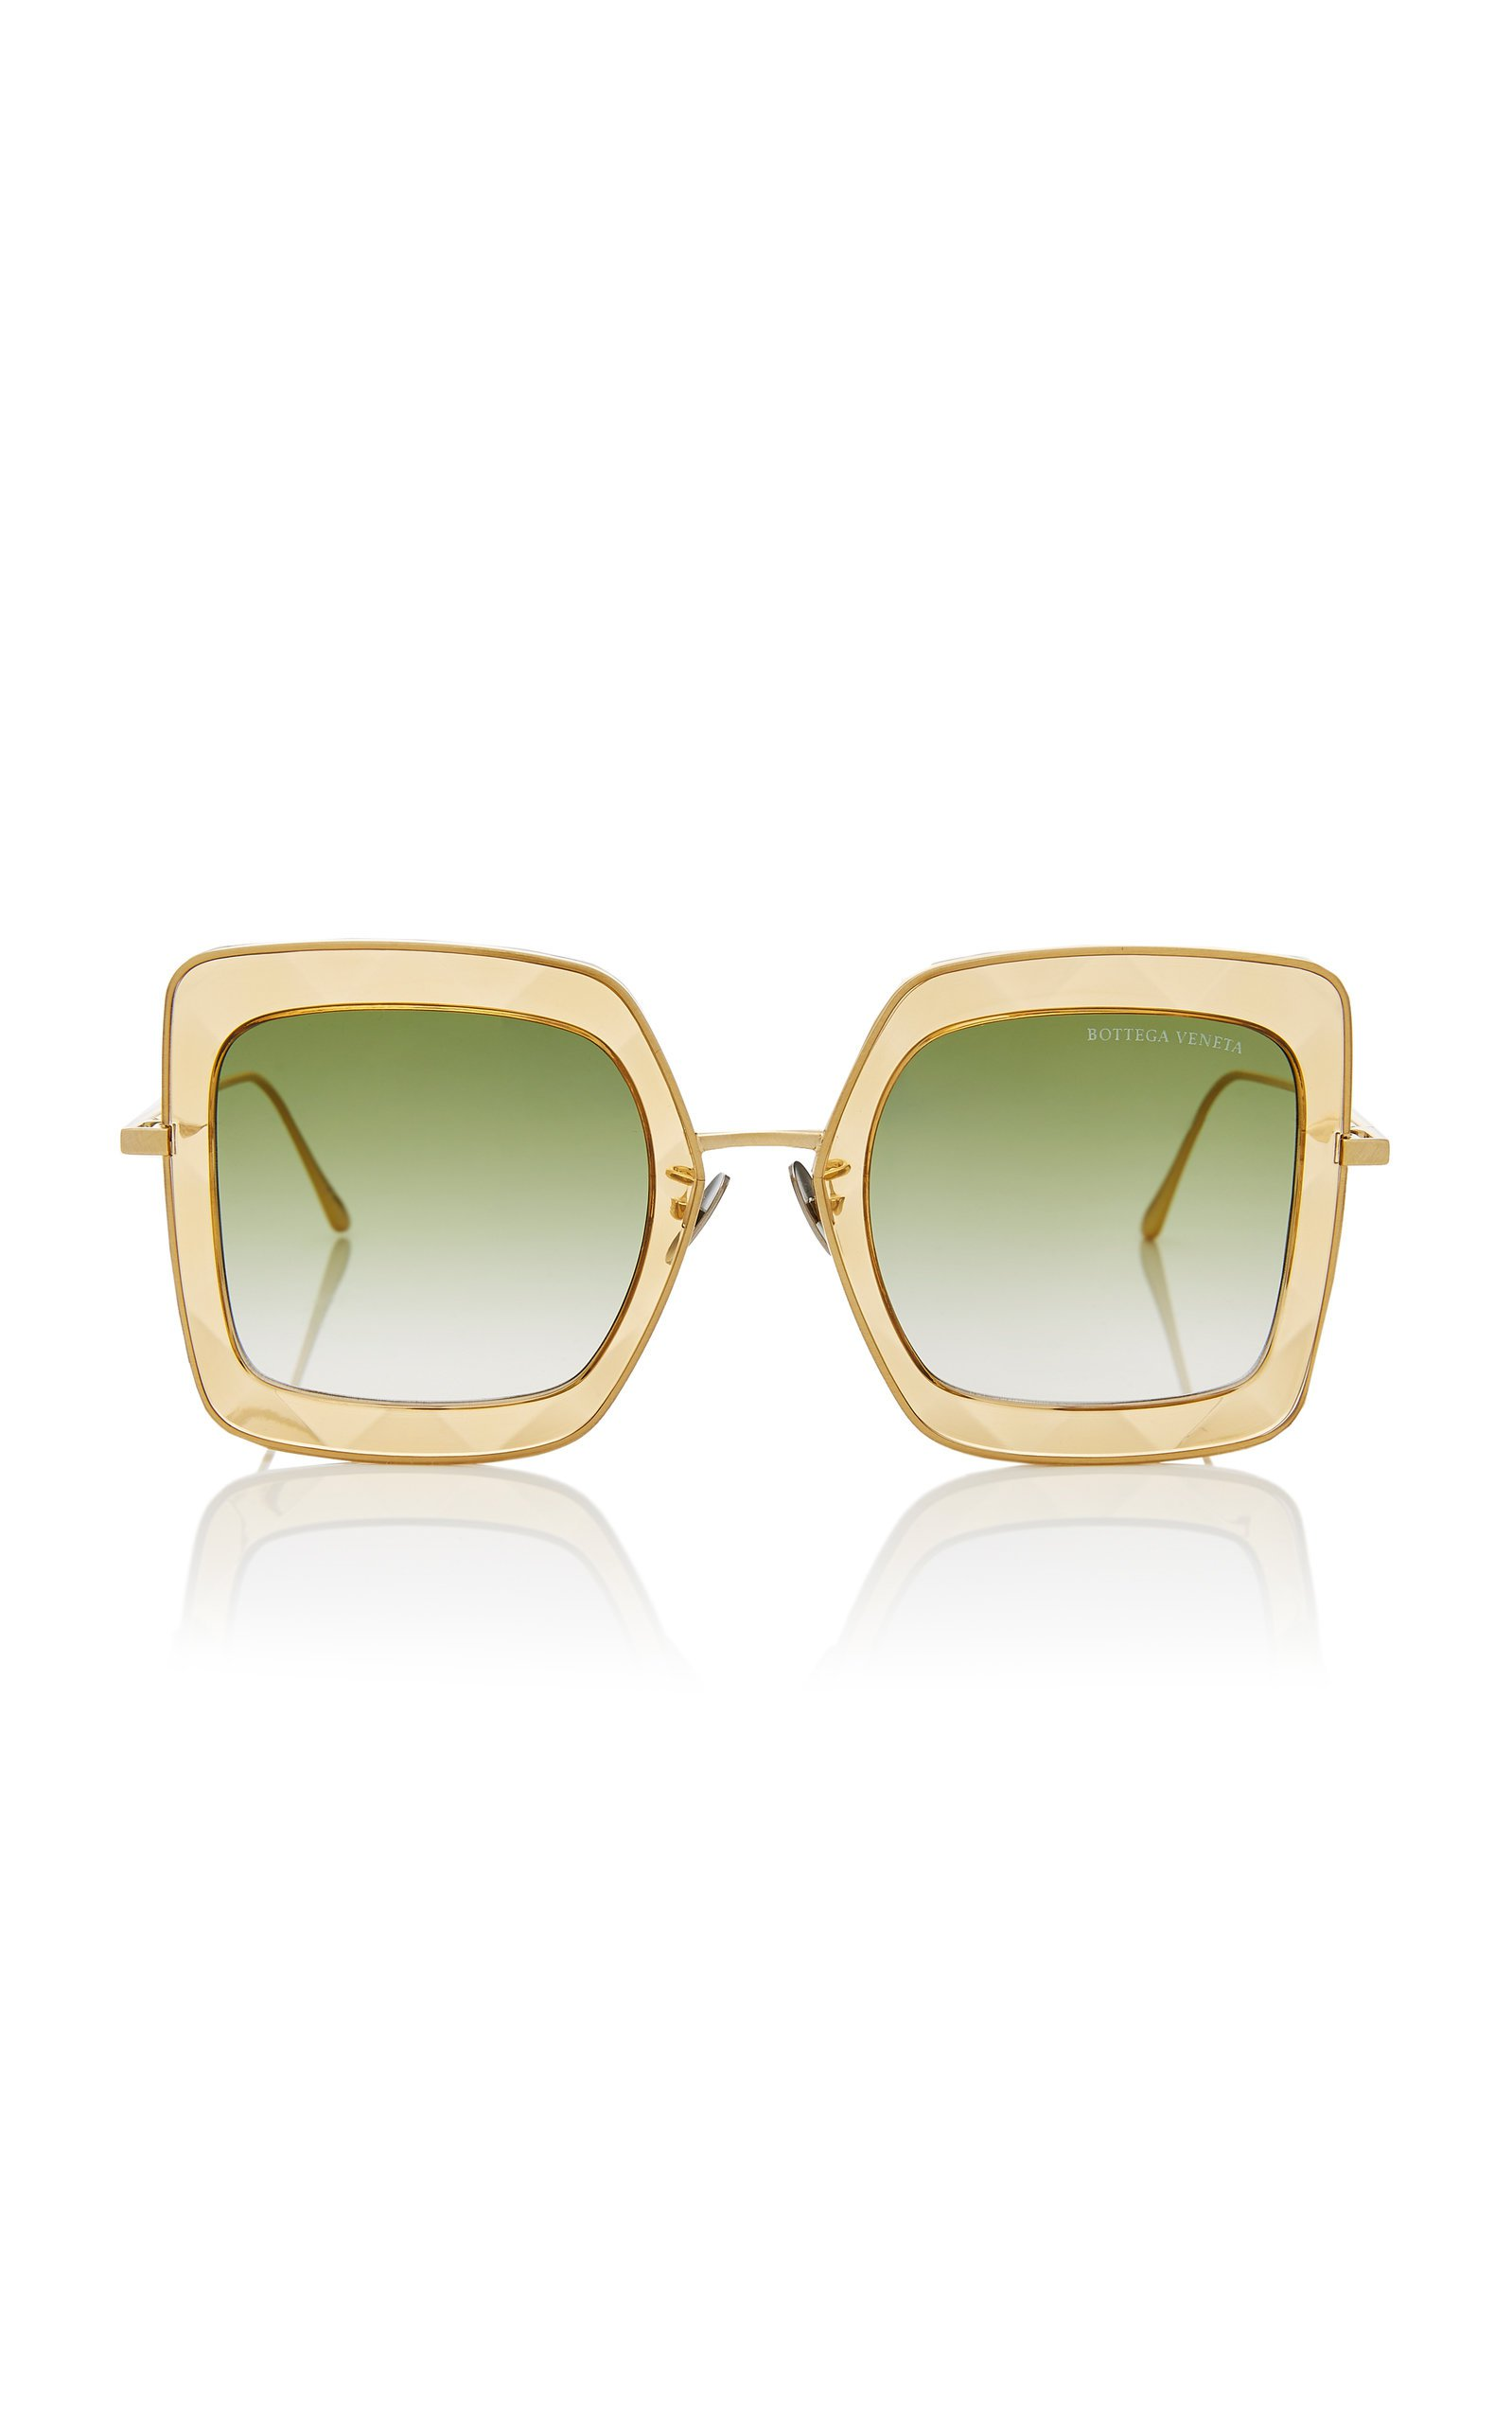 Oversized Square Sunglasses by Bottega Veneta Sunglasses | Moda Operandi